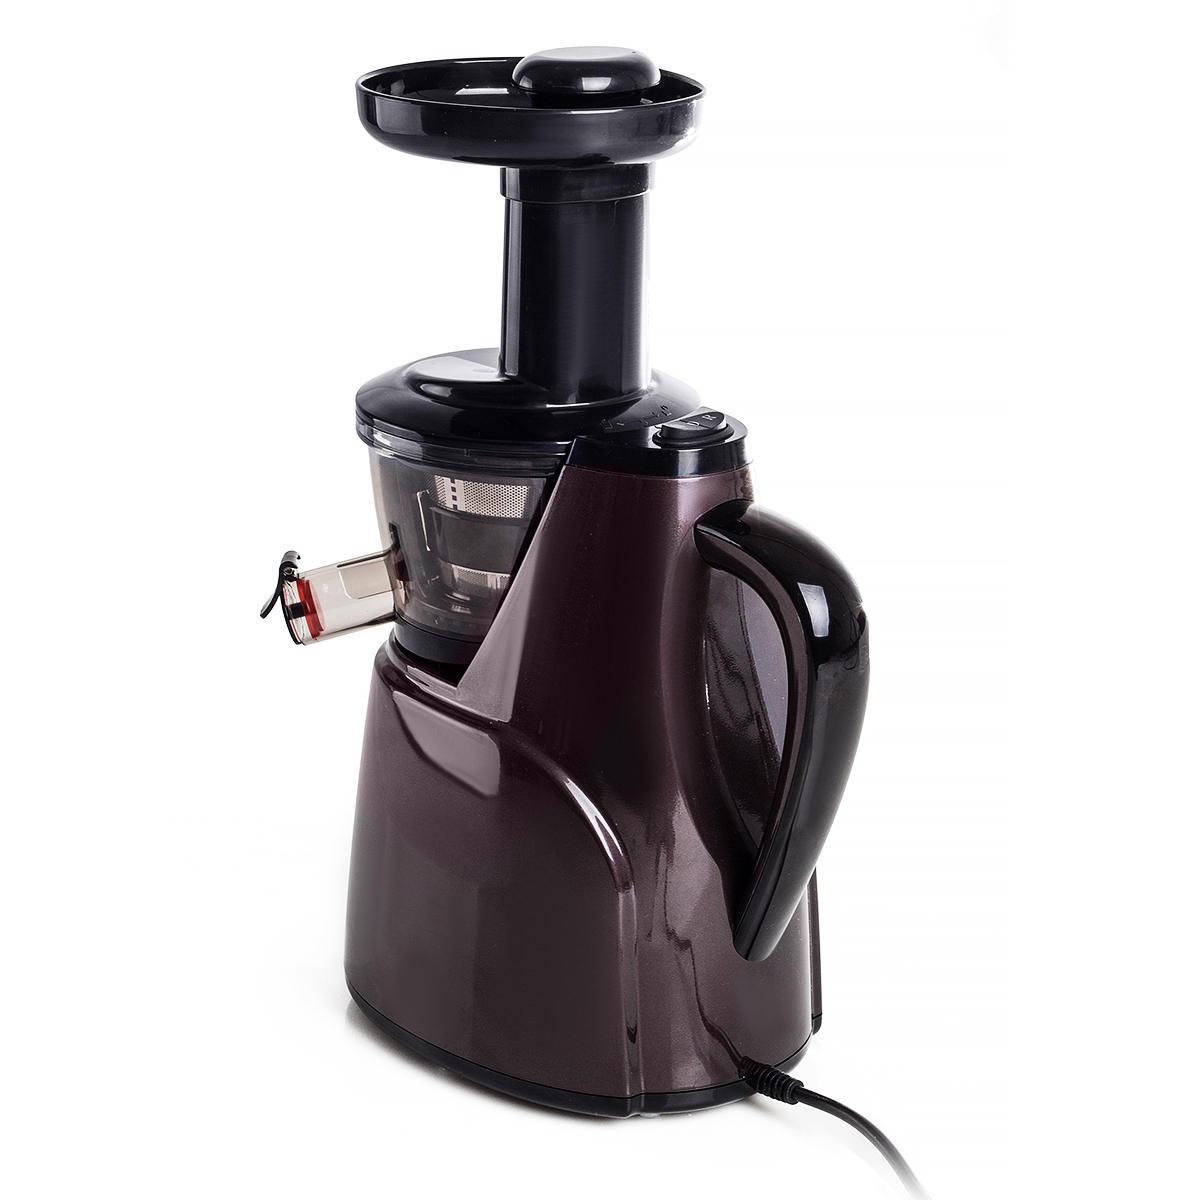 Slow Juicer Essence : Juicer Press Fruit vegetable Slow SlowJuicer NEW Essence eBay